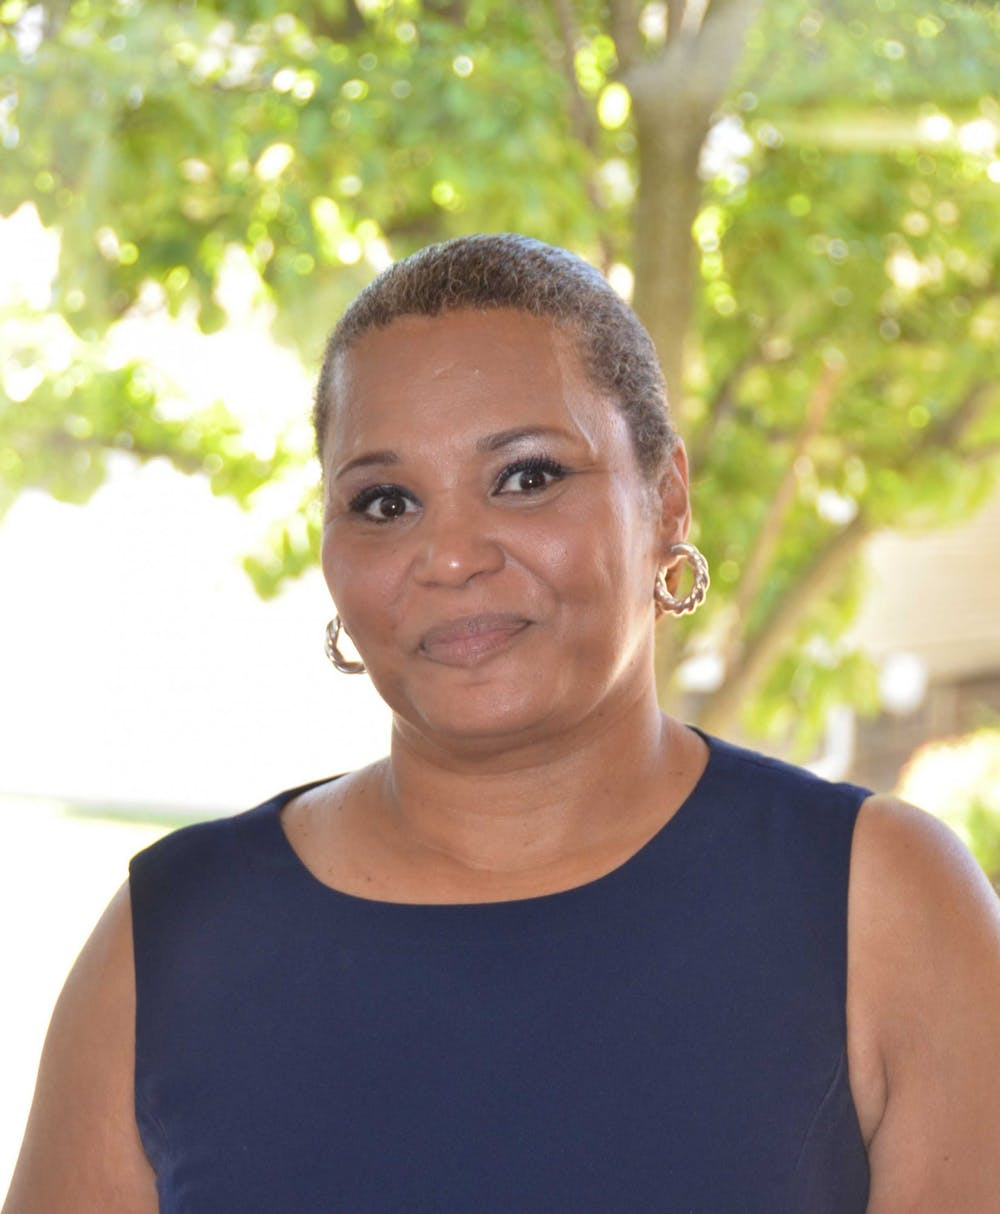 <p>The city of East Lansing appointed Elaine Hardy as the city&#x27;s first diversity, equity and inclusion administrator June 18, 2020. This photo was provided by the city of East Lansing.</p>